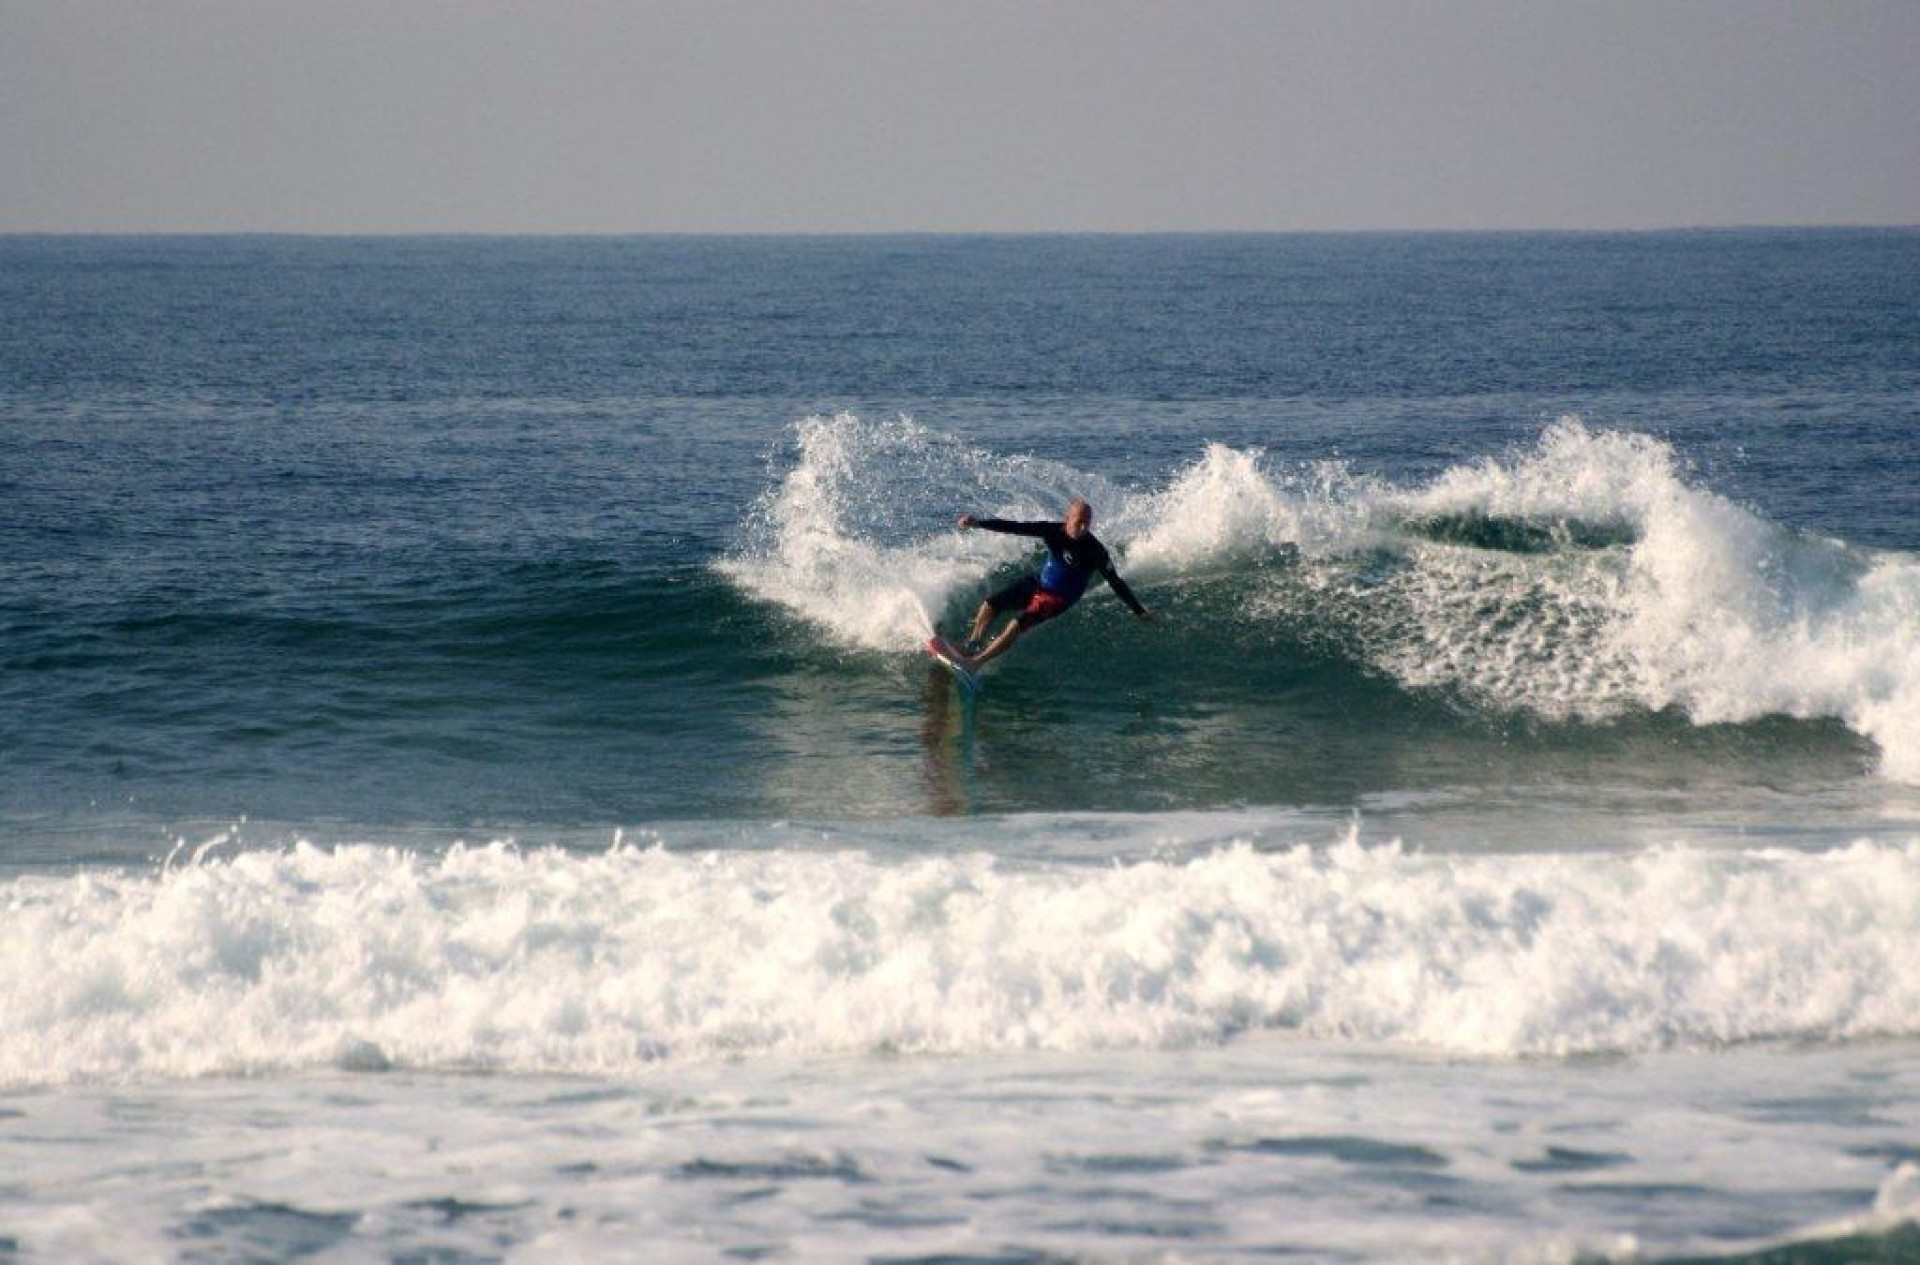 Shayne McGee's photo of Durban